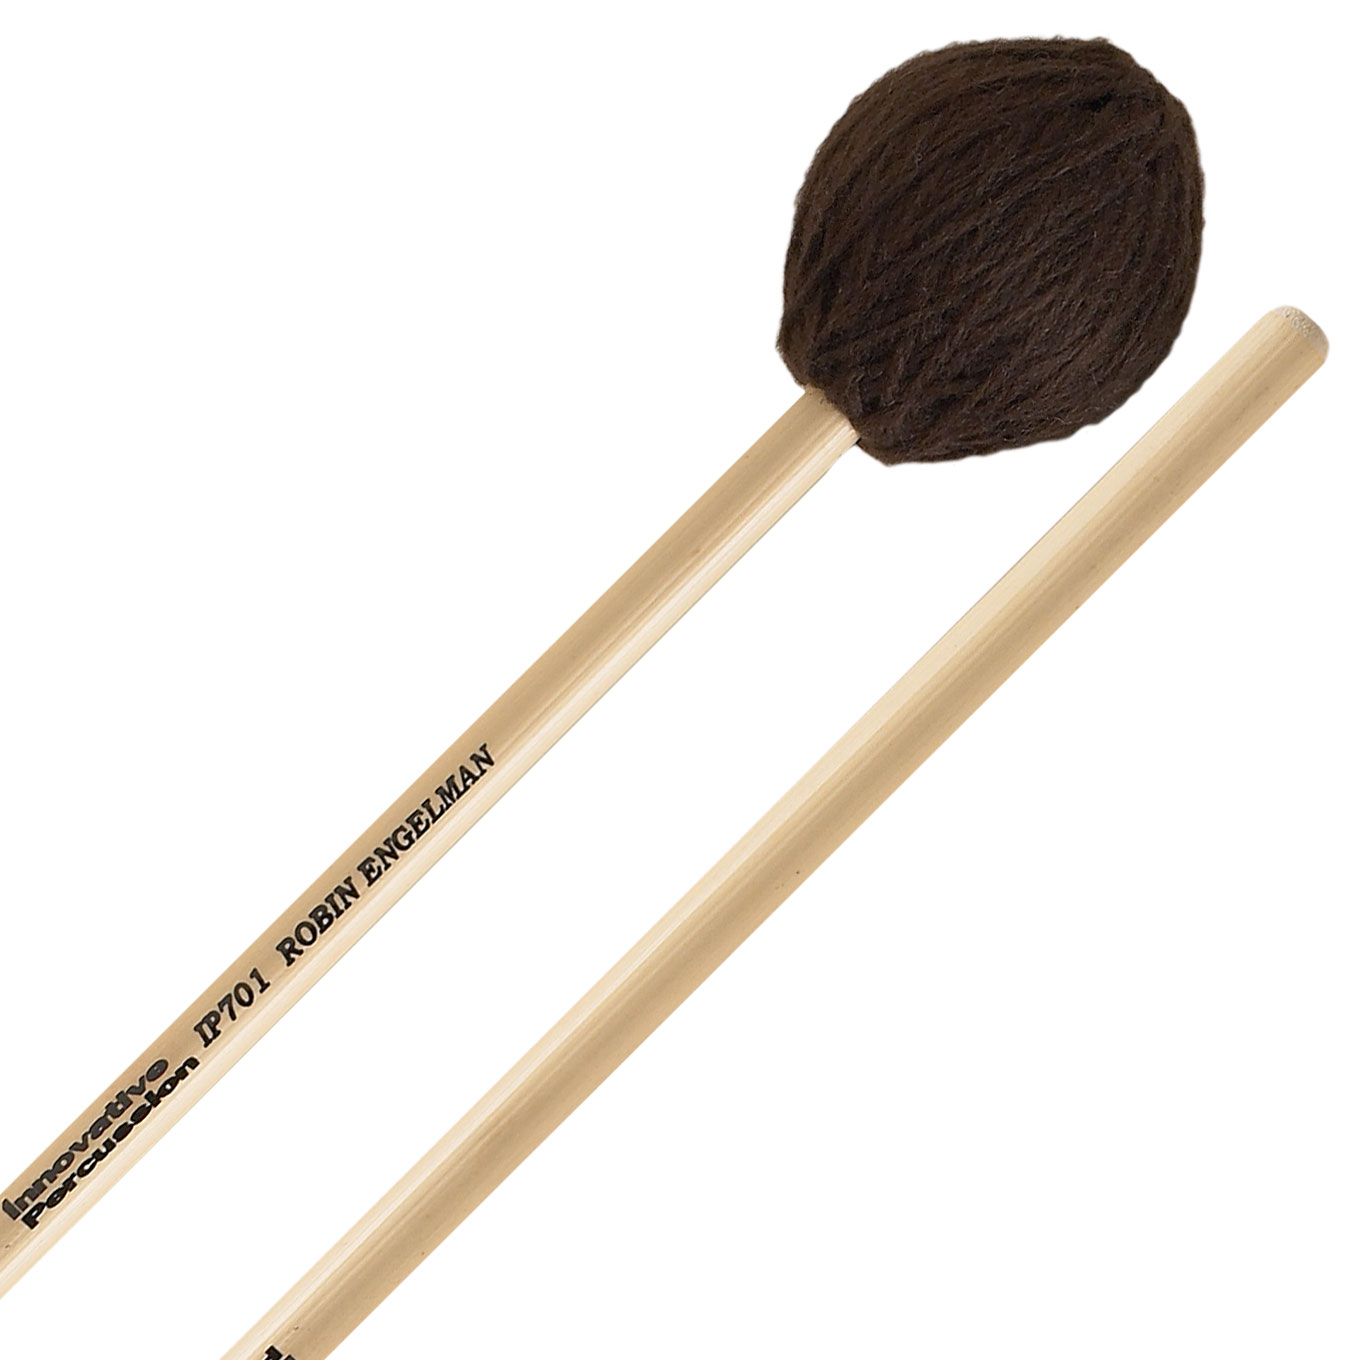 Innovative Percussion Robin Engelman Signature Multi-Percussion/Bass Marimba Mallets